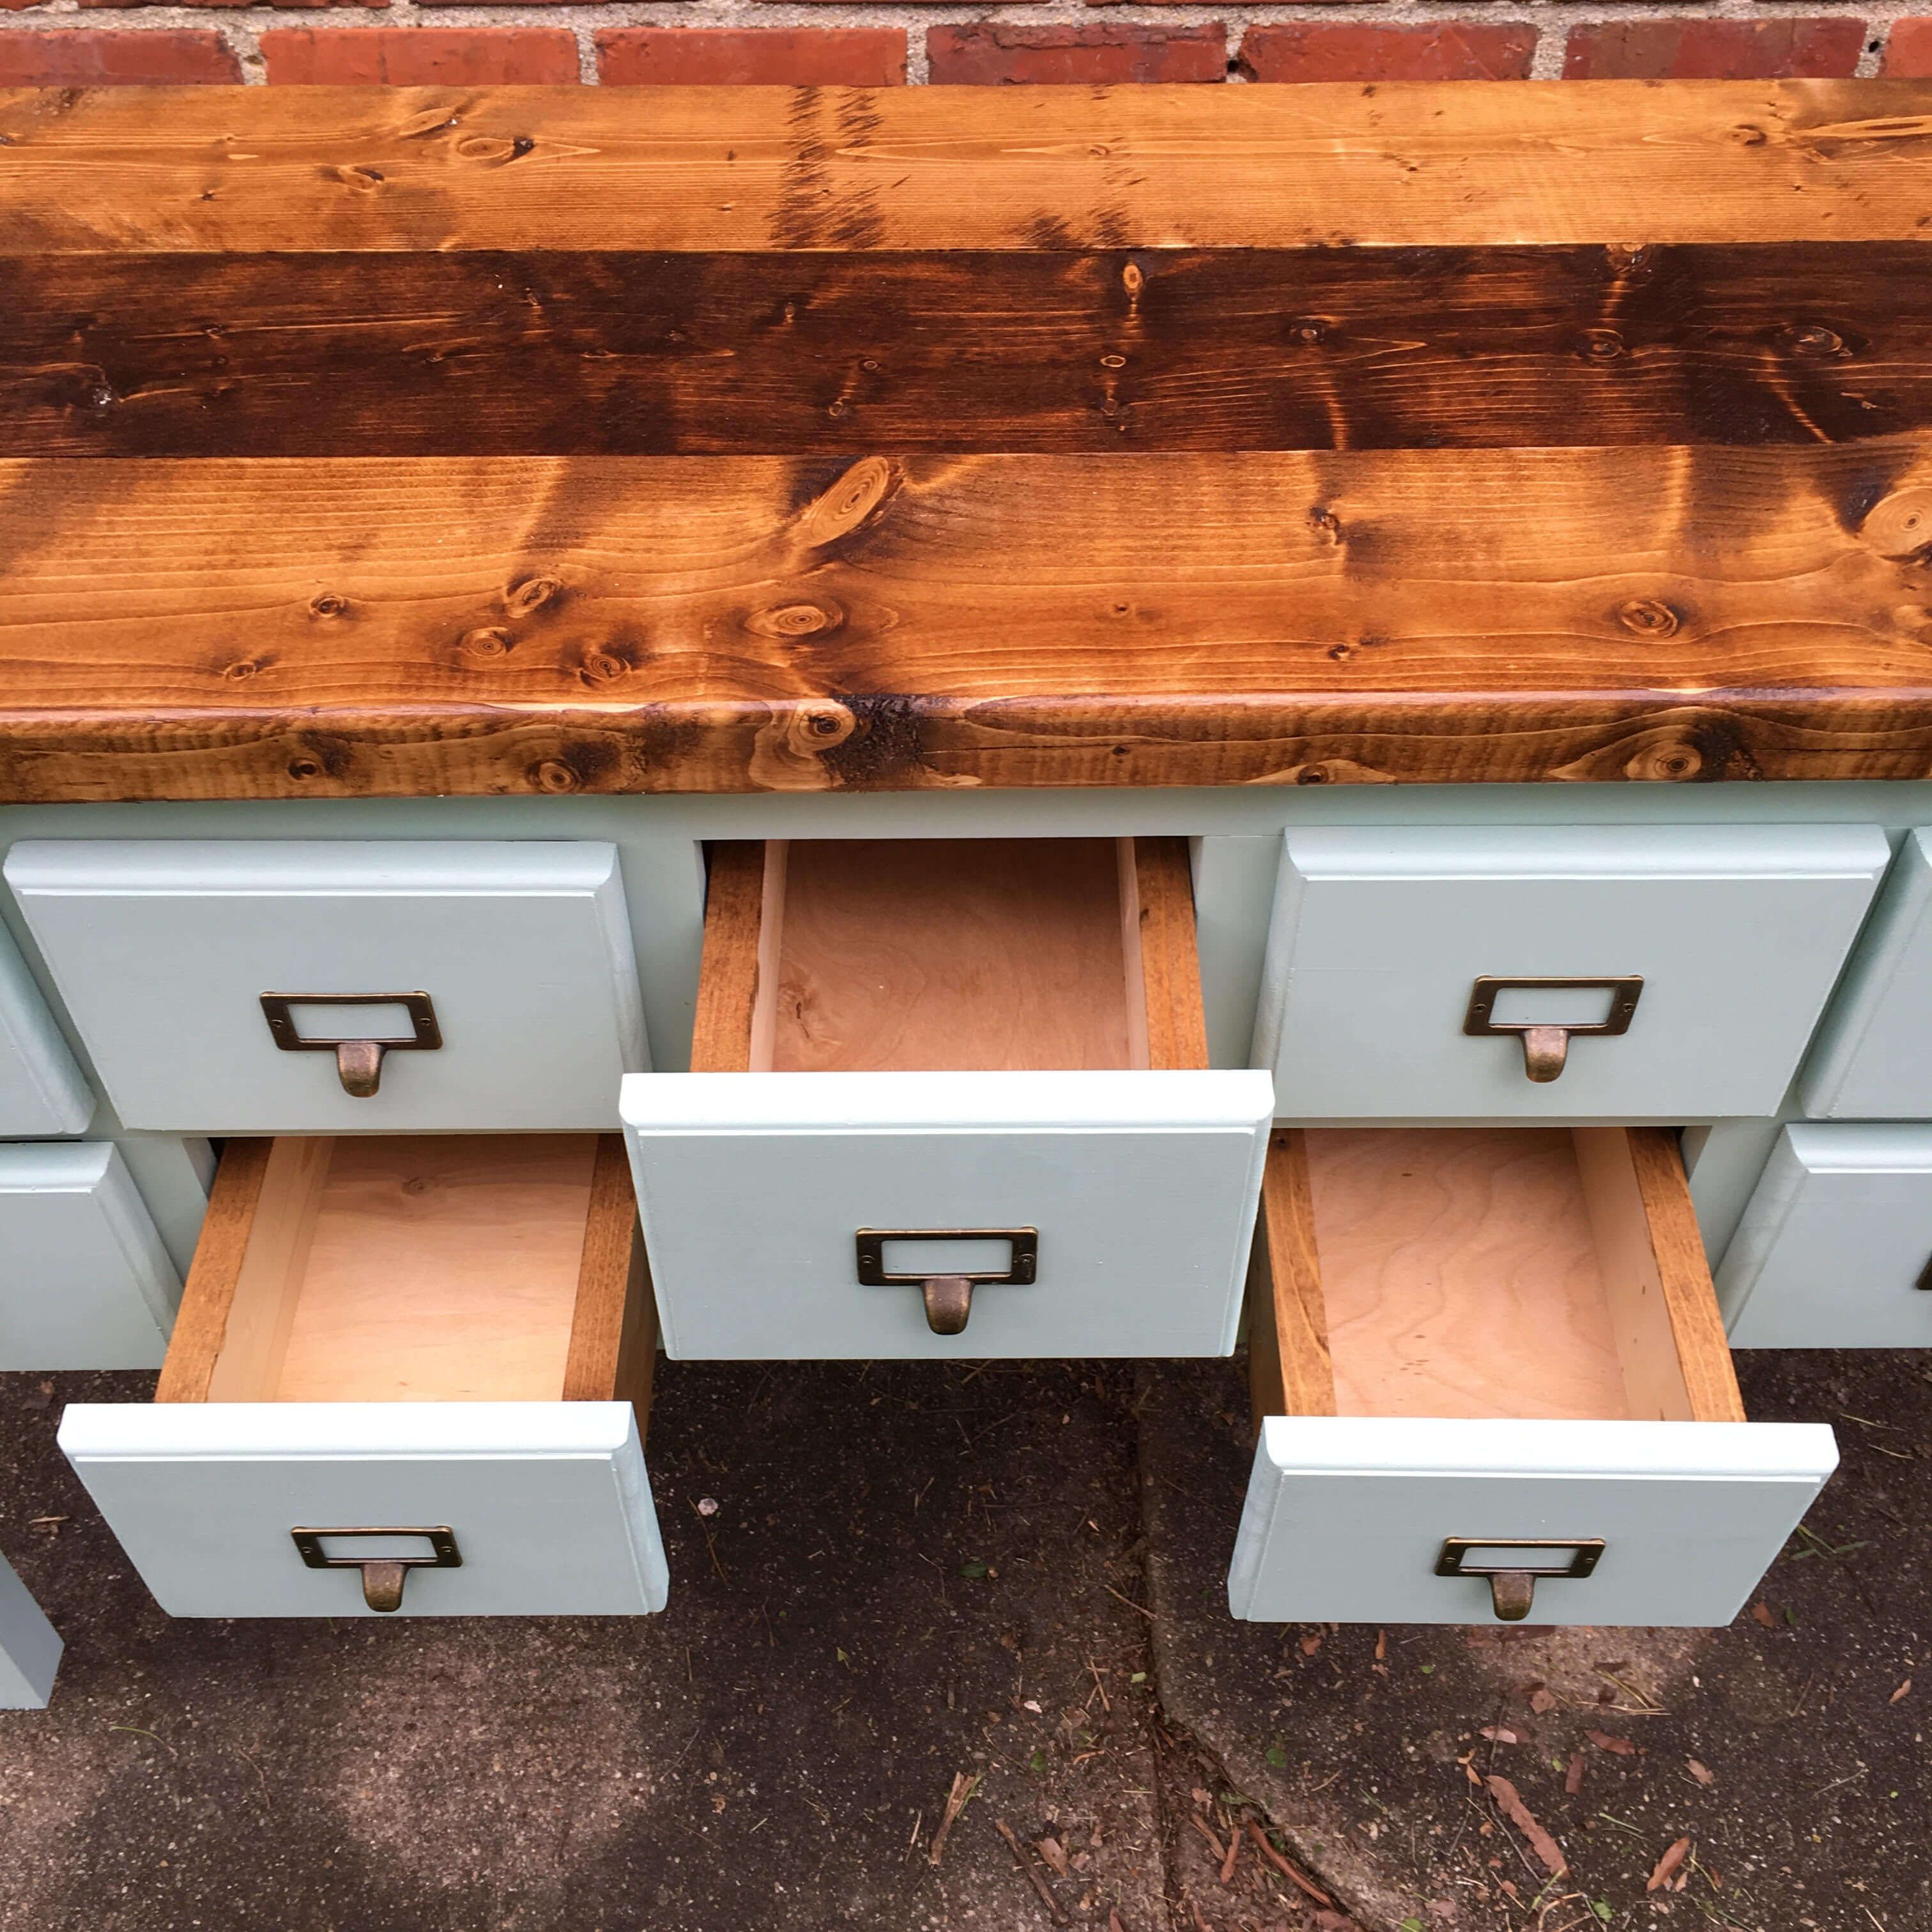 Build Your Own Drawers Lazy Guy Diy Woodworking Plans Shelves Woodworking Diy Dresser Plans